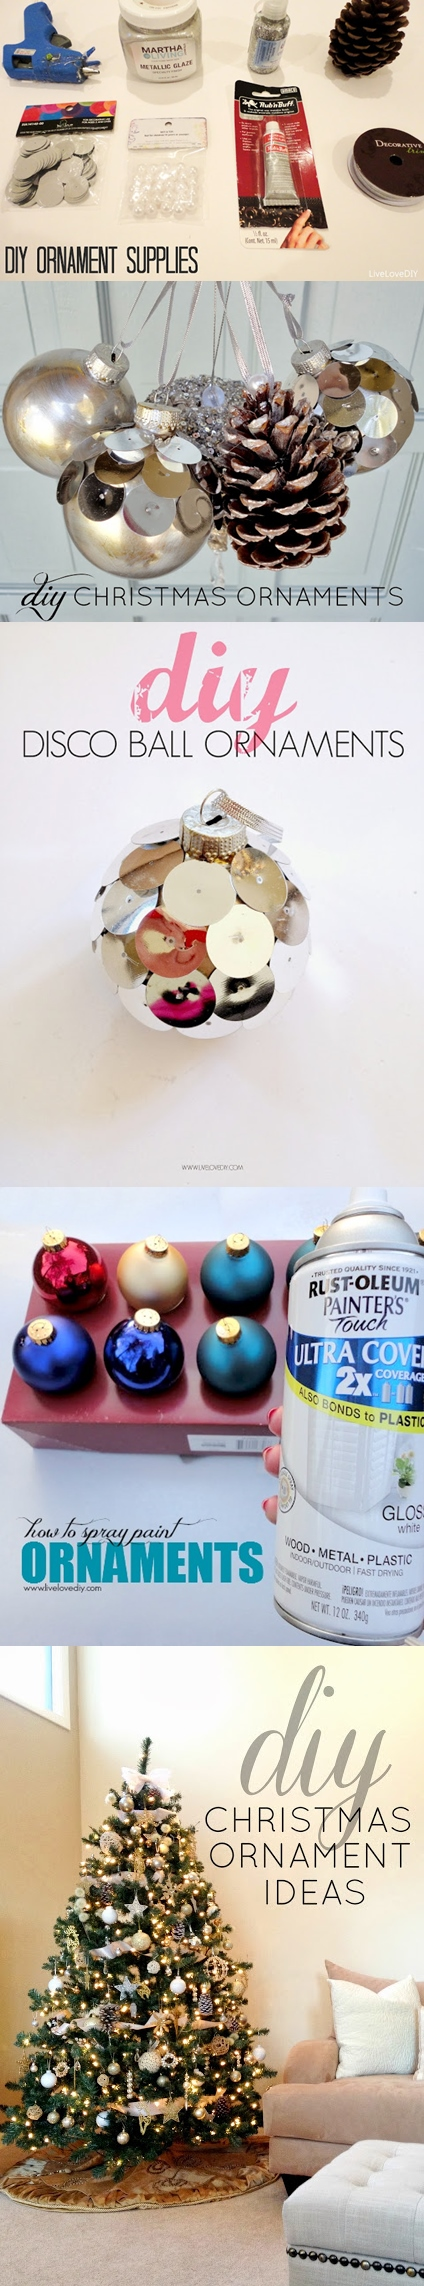 Y Christmas Ornaments Ideas